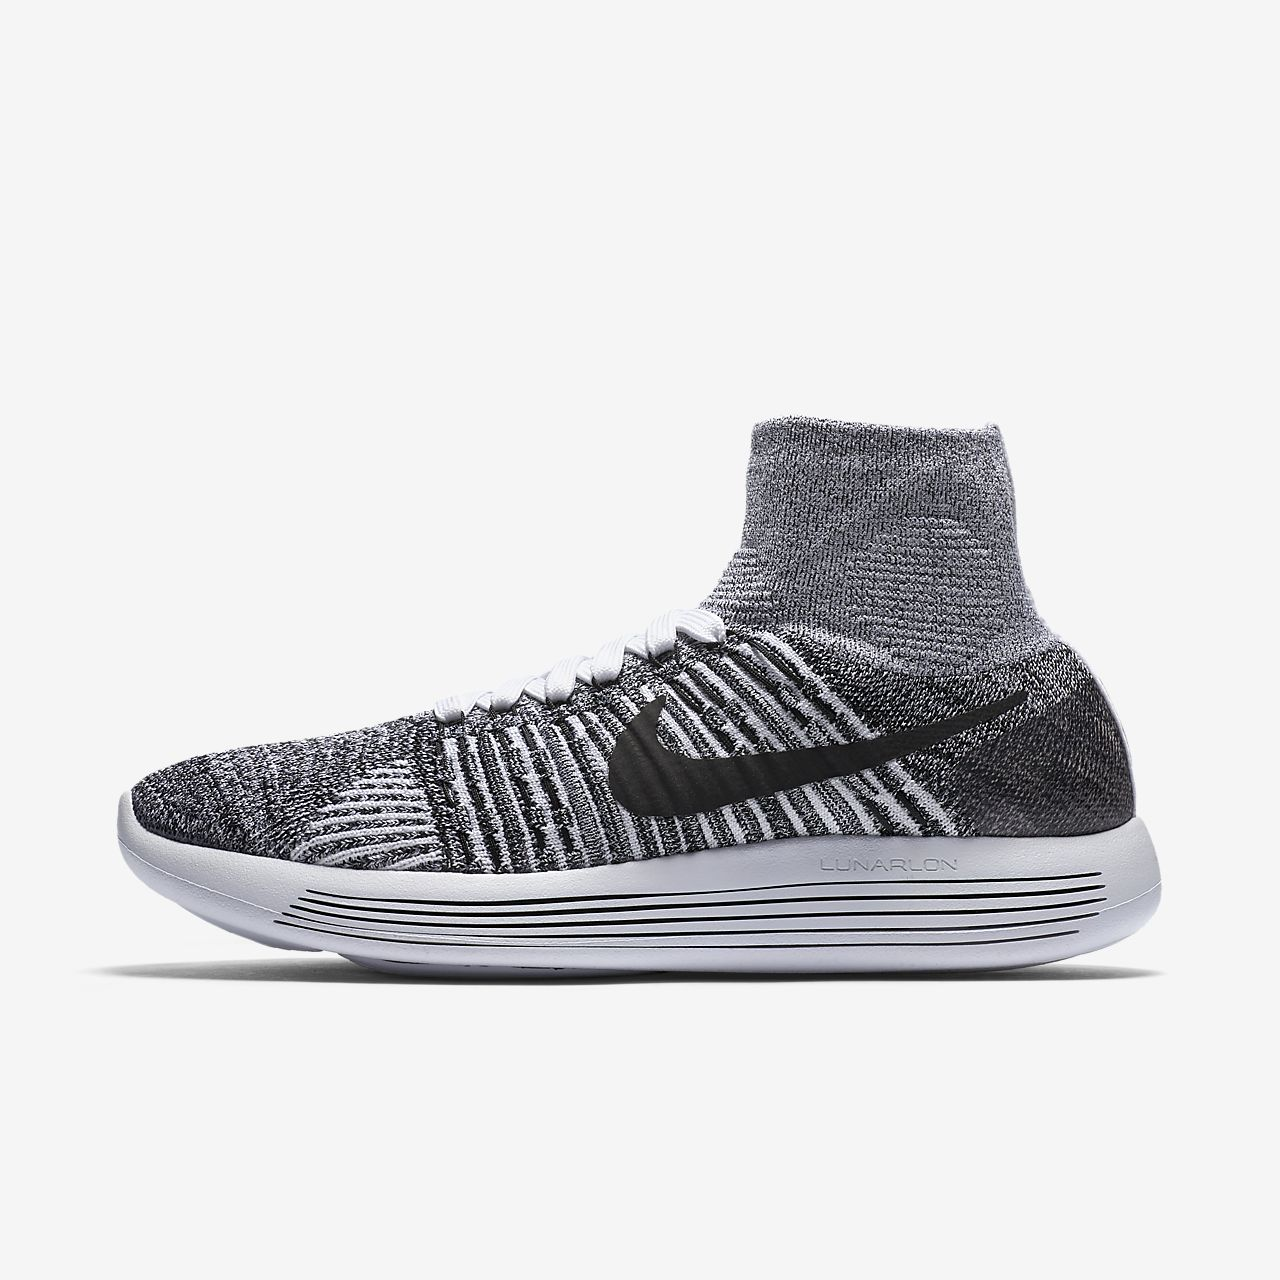 NEW Nike Lunarepic Flyknit White Black 818677-101 Womens Running Shoes All Sizes